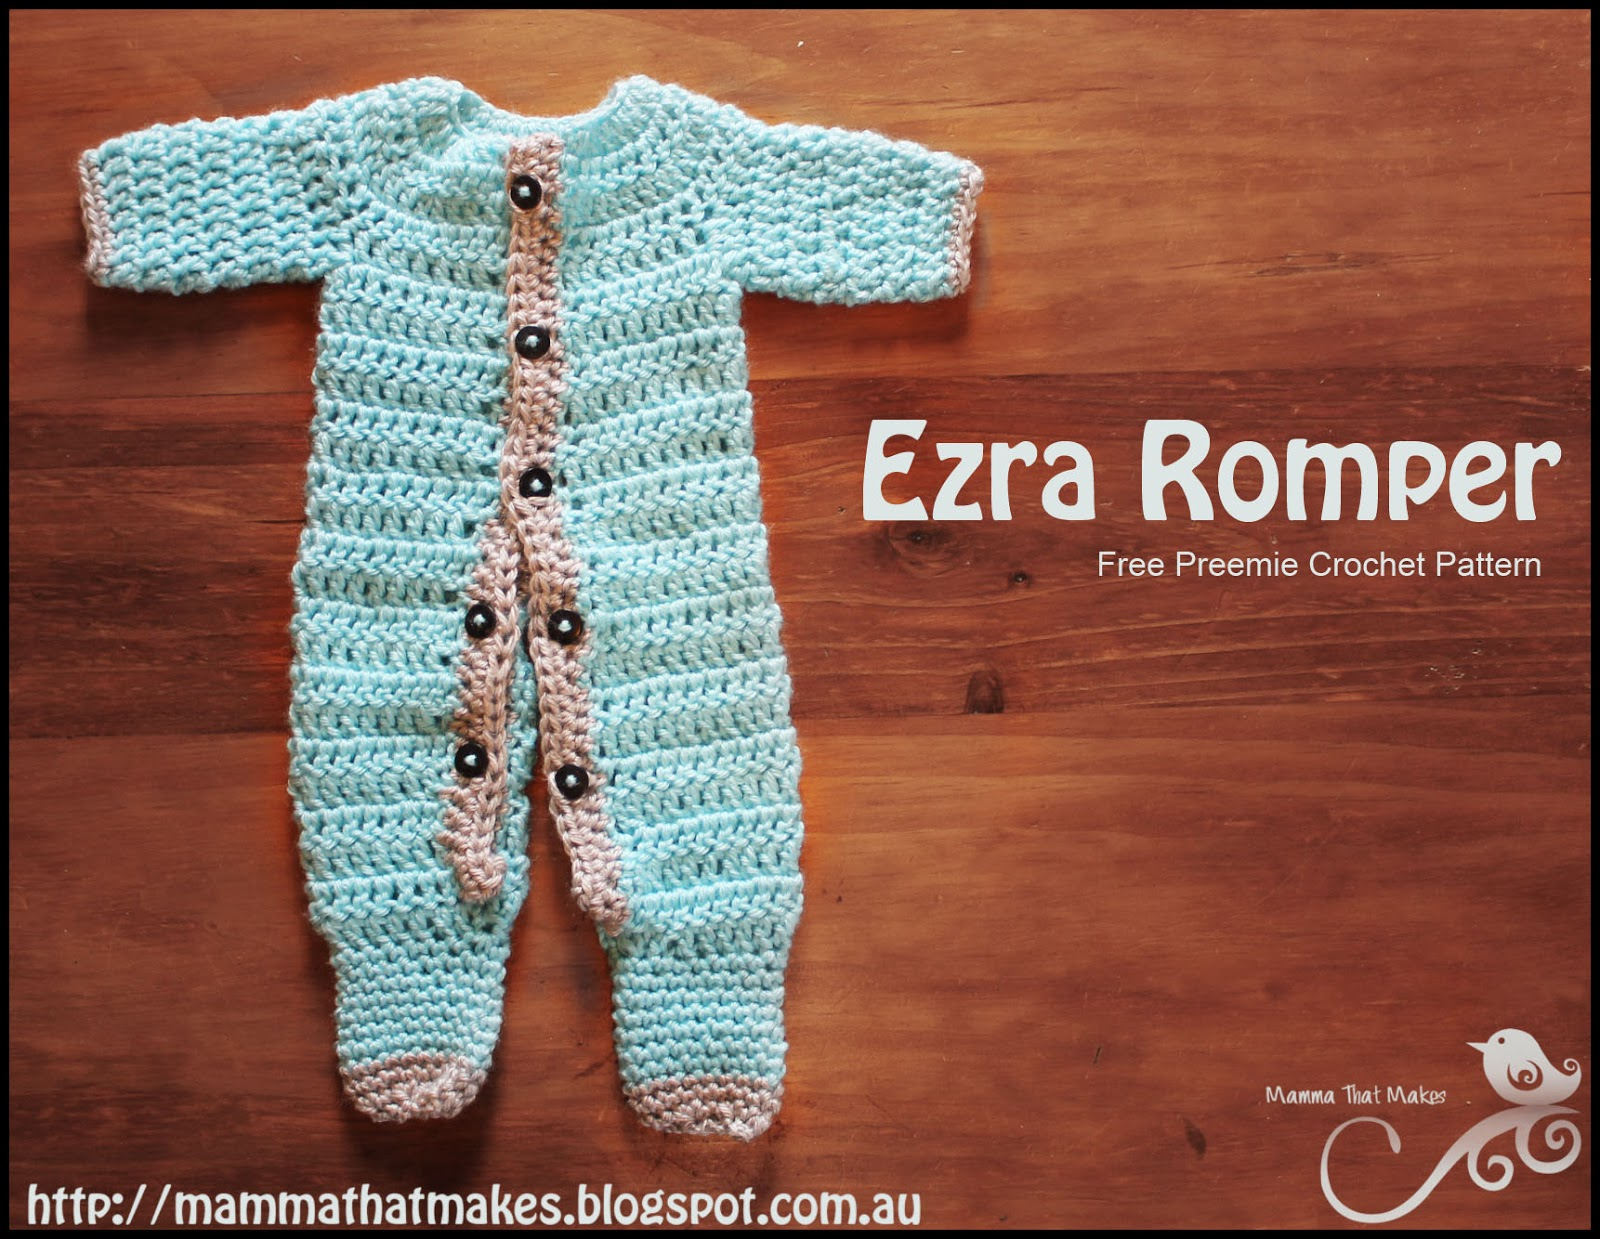 Mamma That Makes  Ezra Romper - Free Crochet Pattern b8a79c6f7